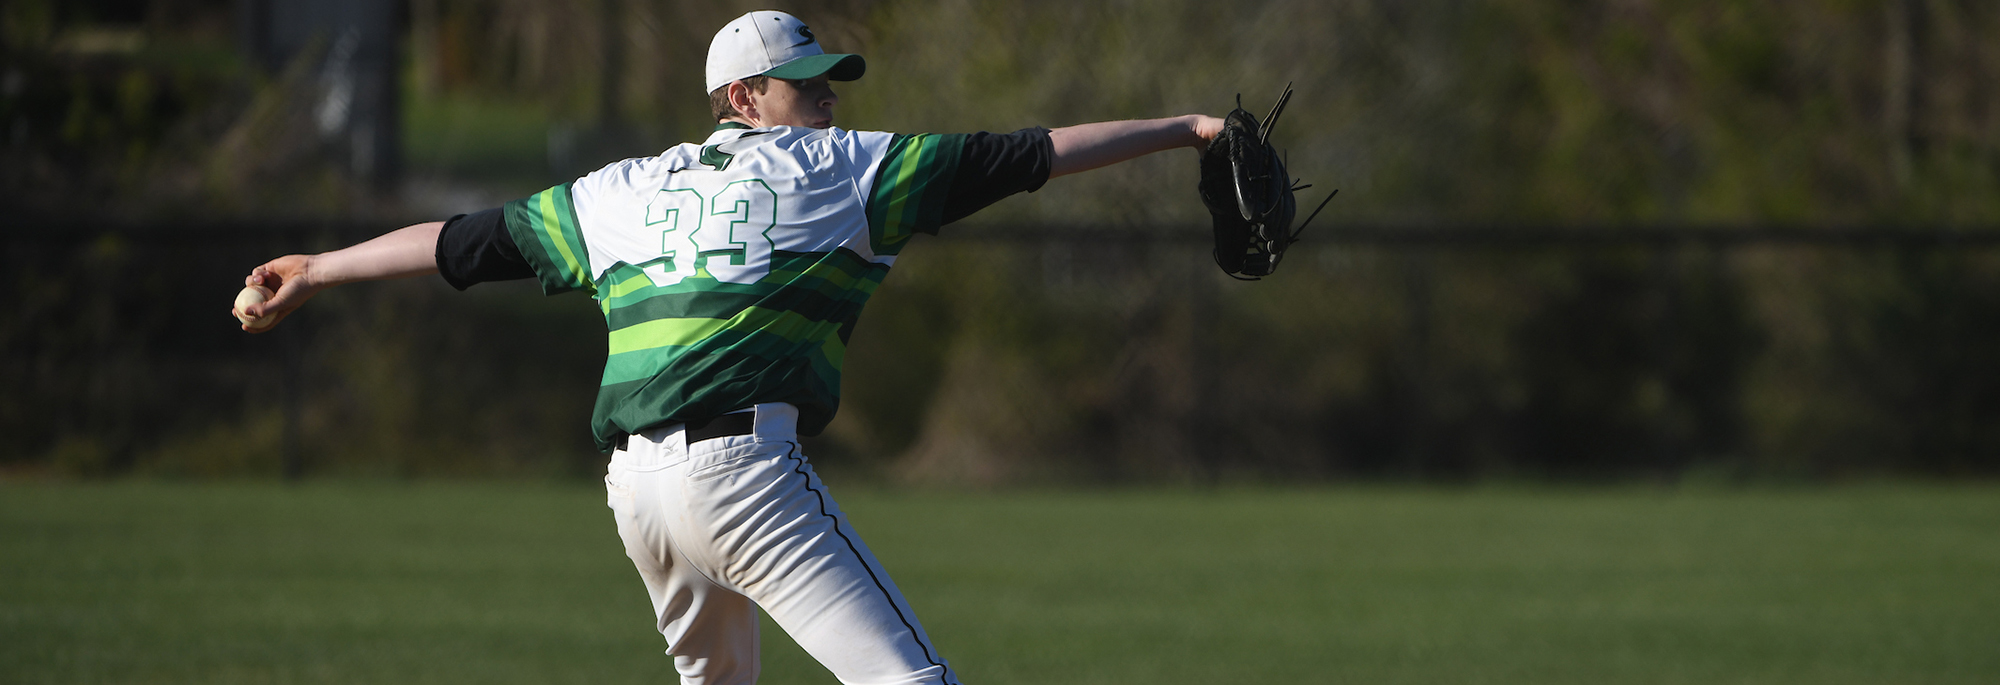 Wiercinski Hurls Complete Game To Keep Postseason Hopes Alive With Win At Catholic